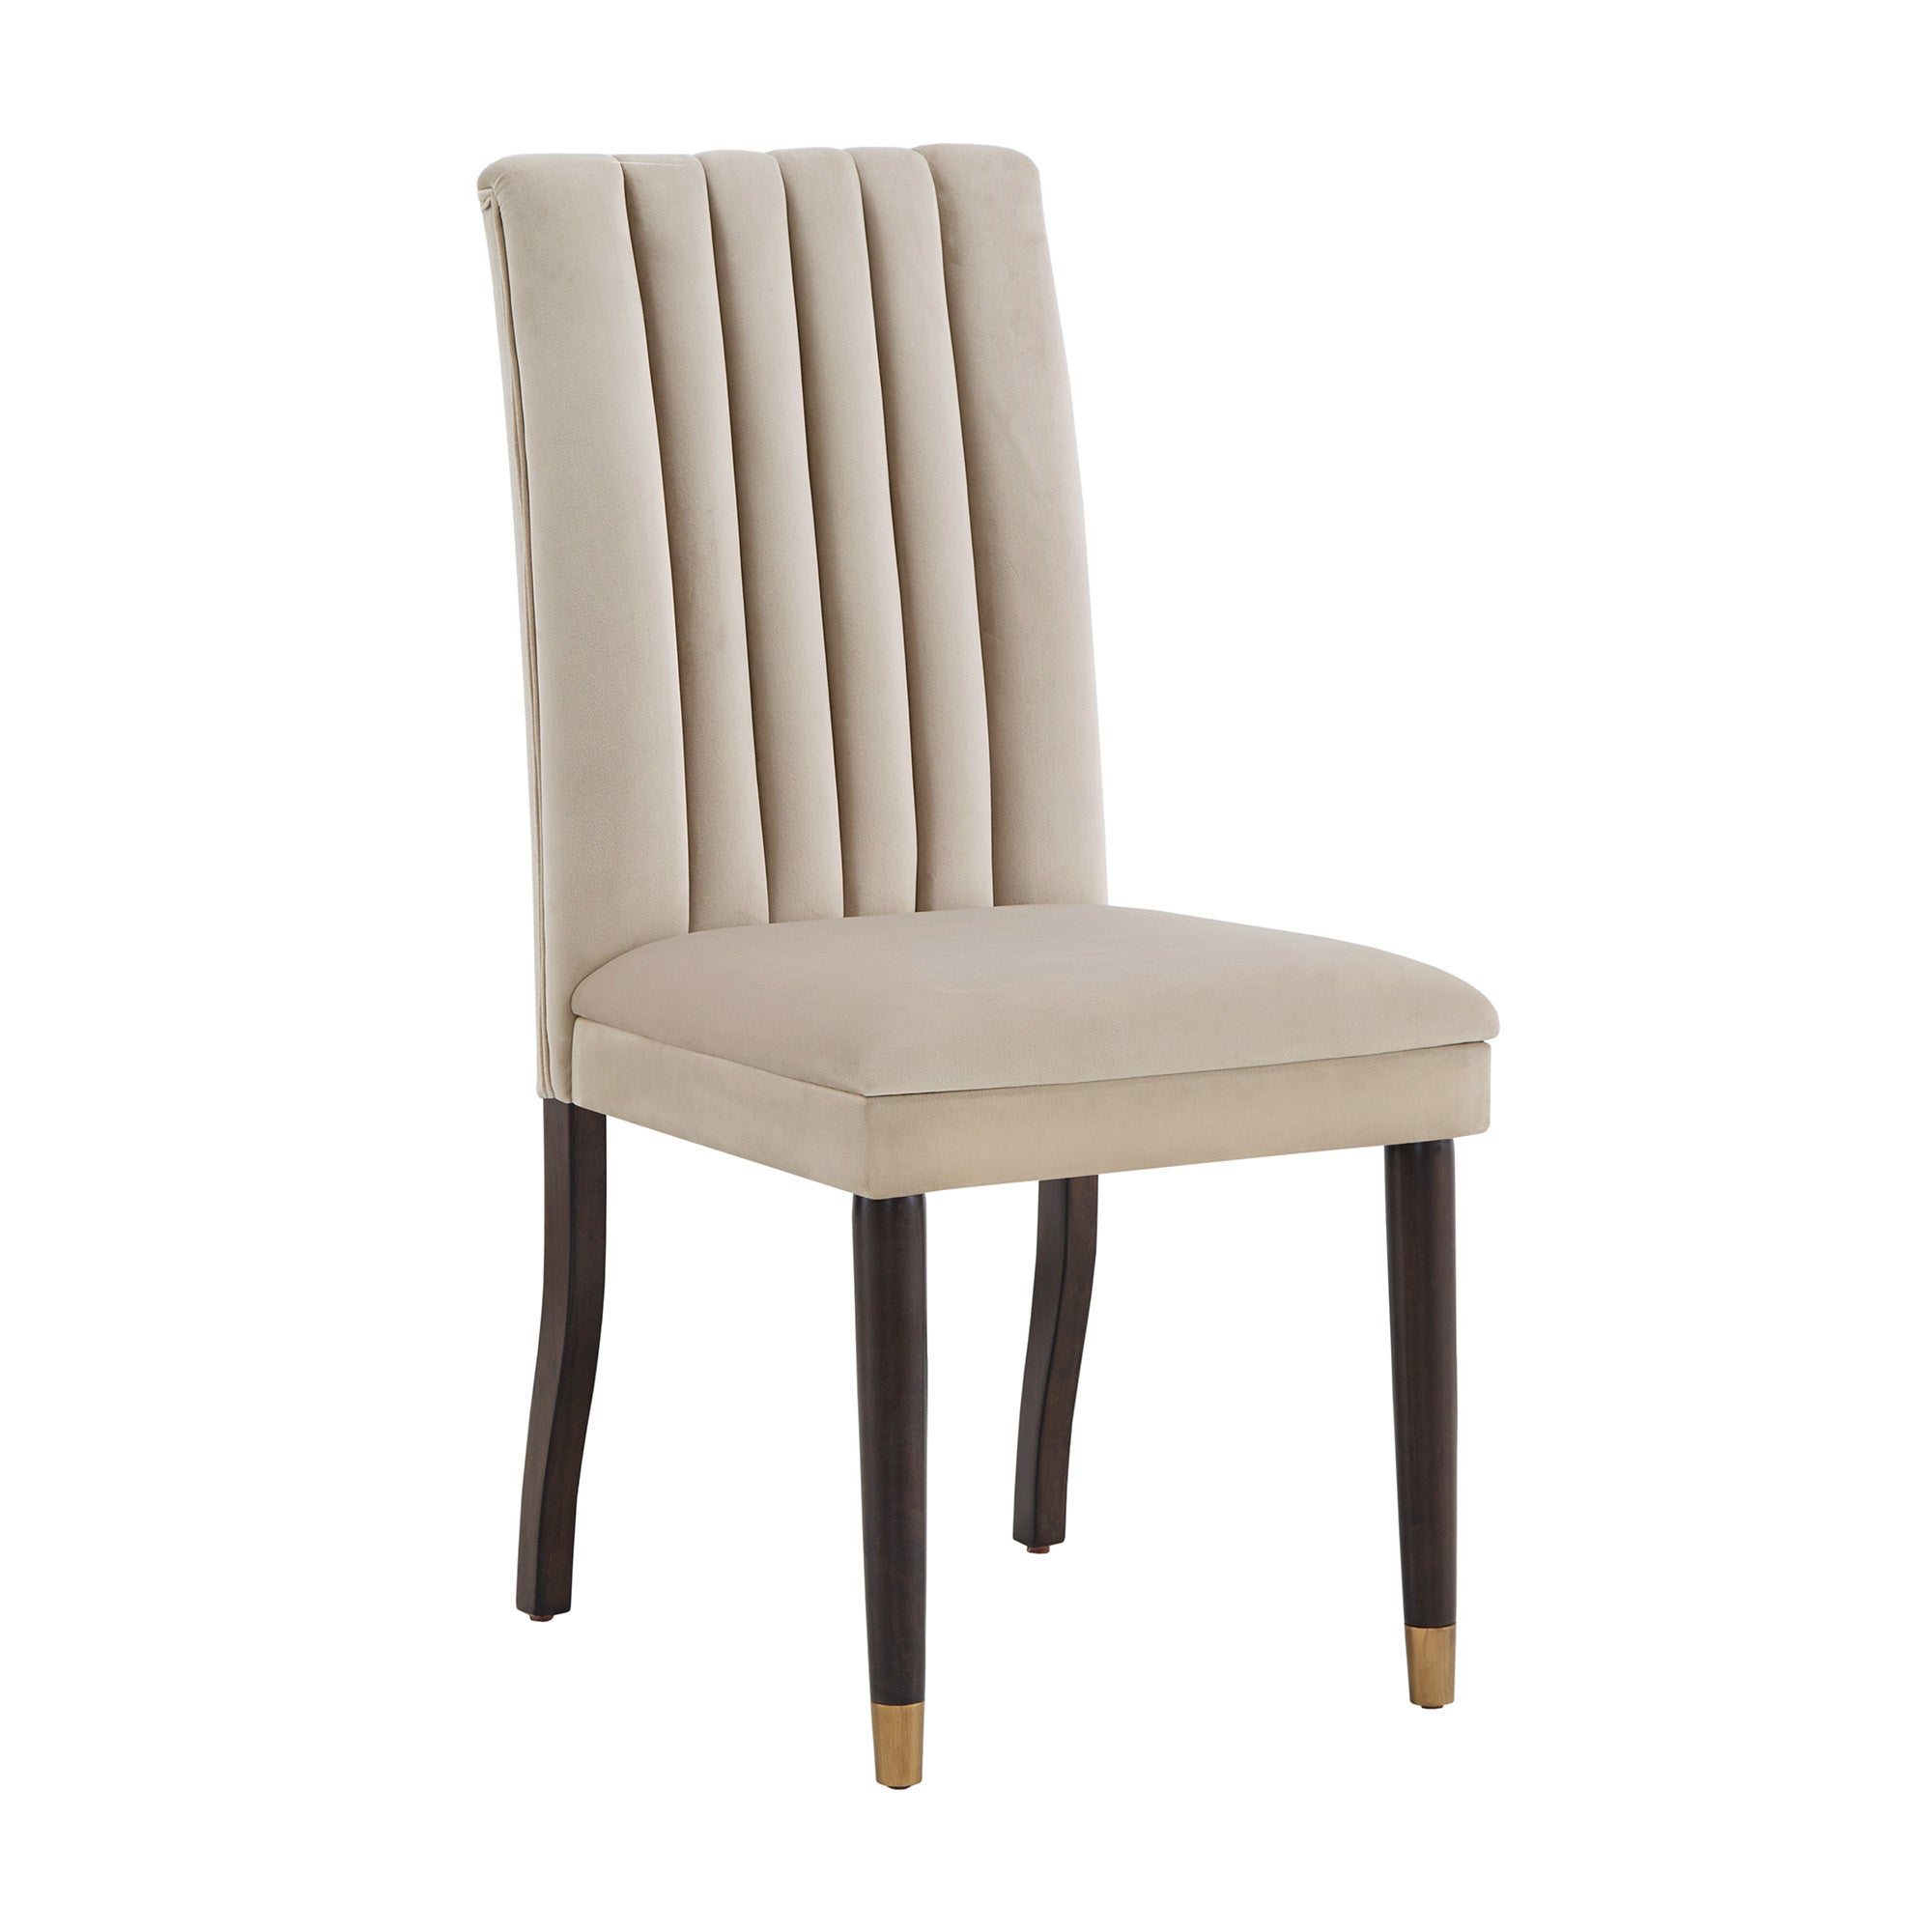 Velvet Channel Back Dining Chairs (Set of 2) - Taupe Velvet